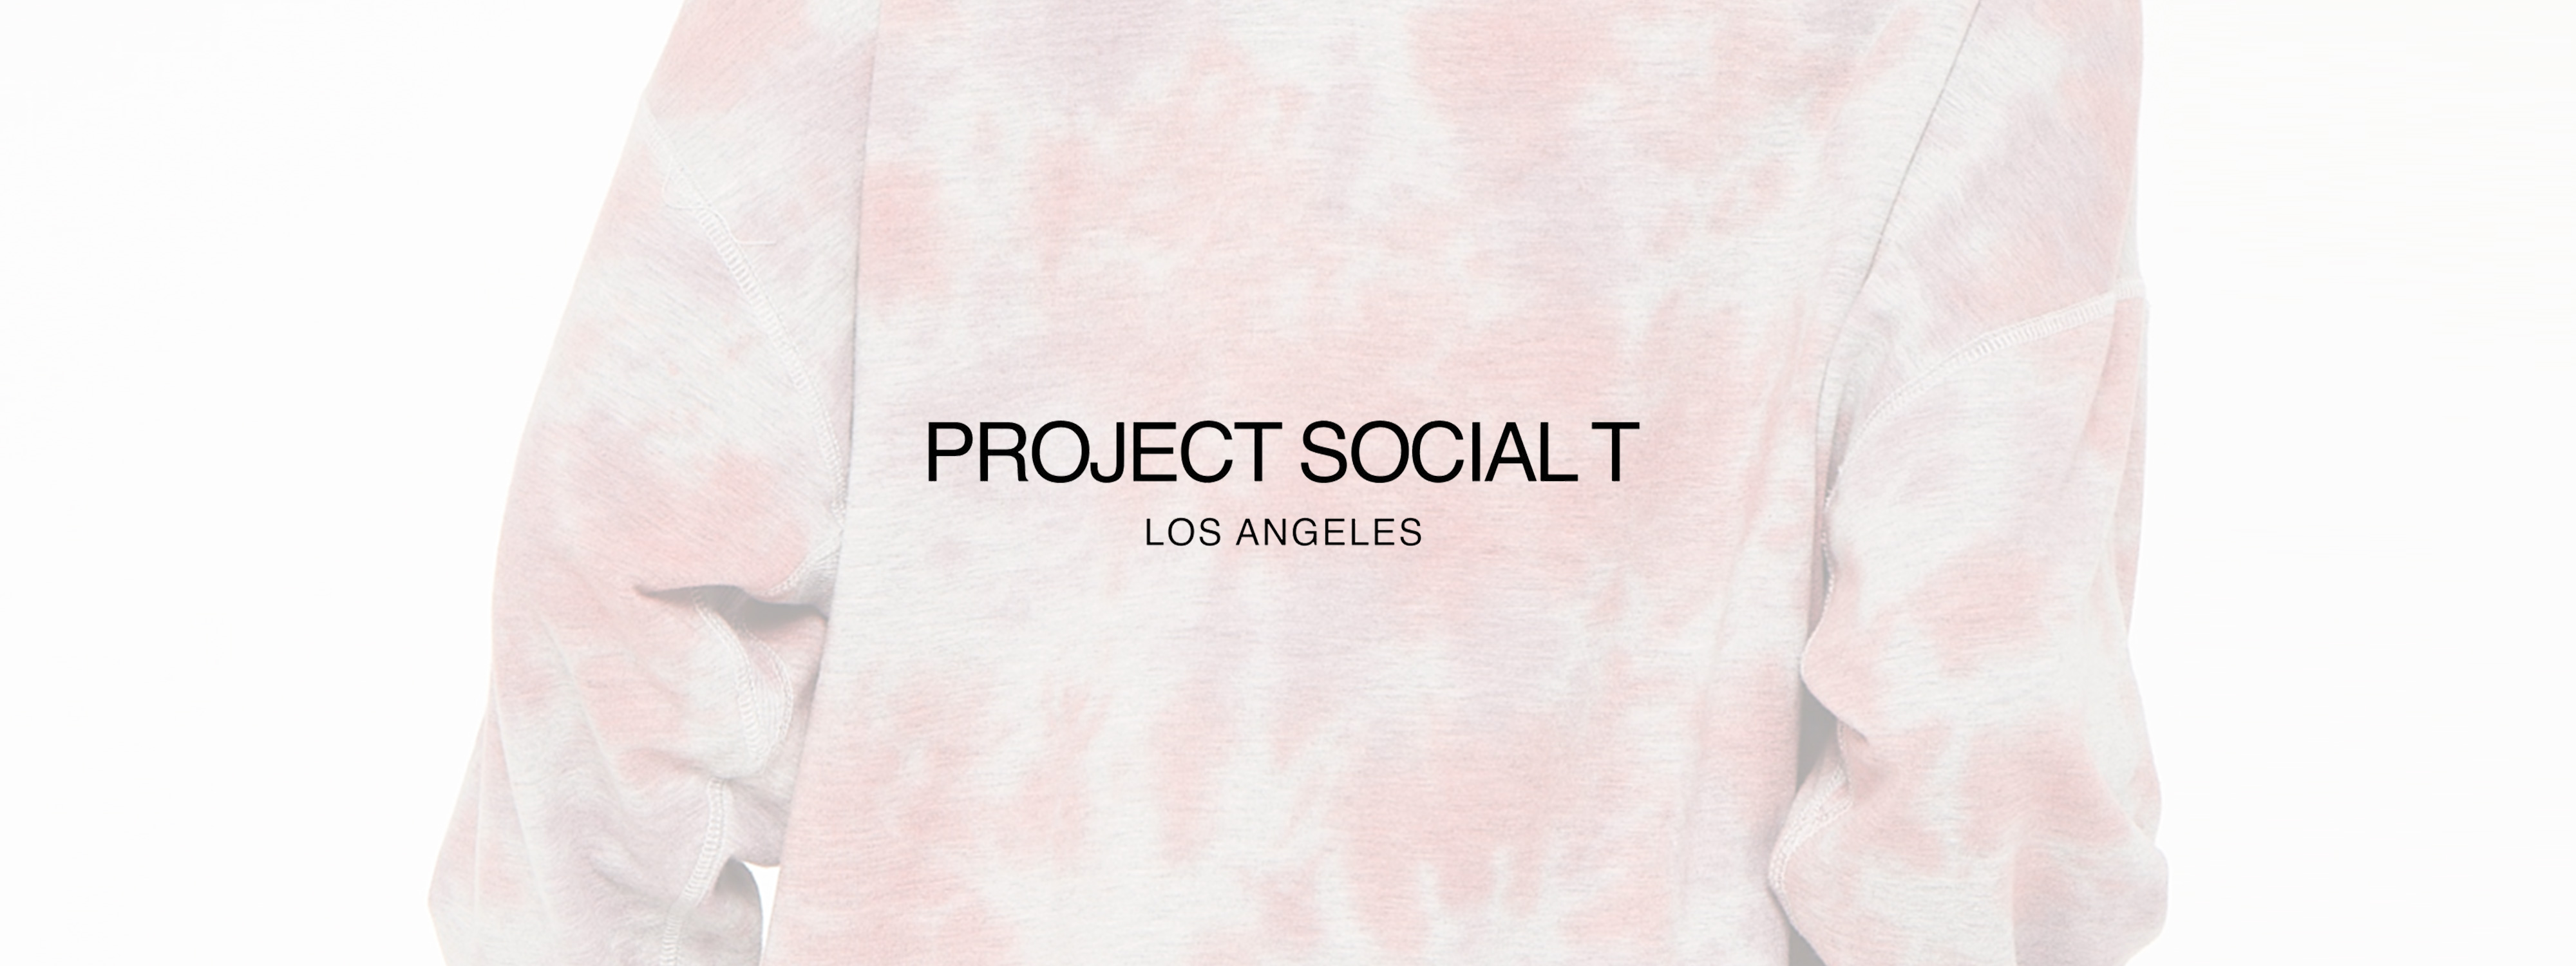 knuths-project-social-t-brands